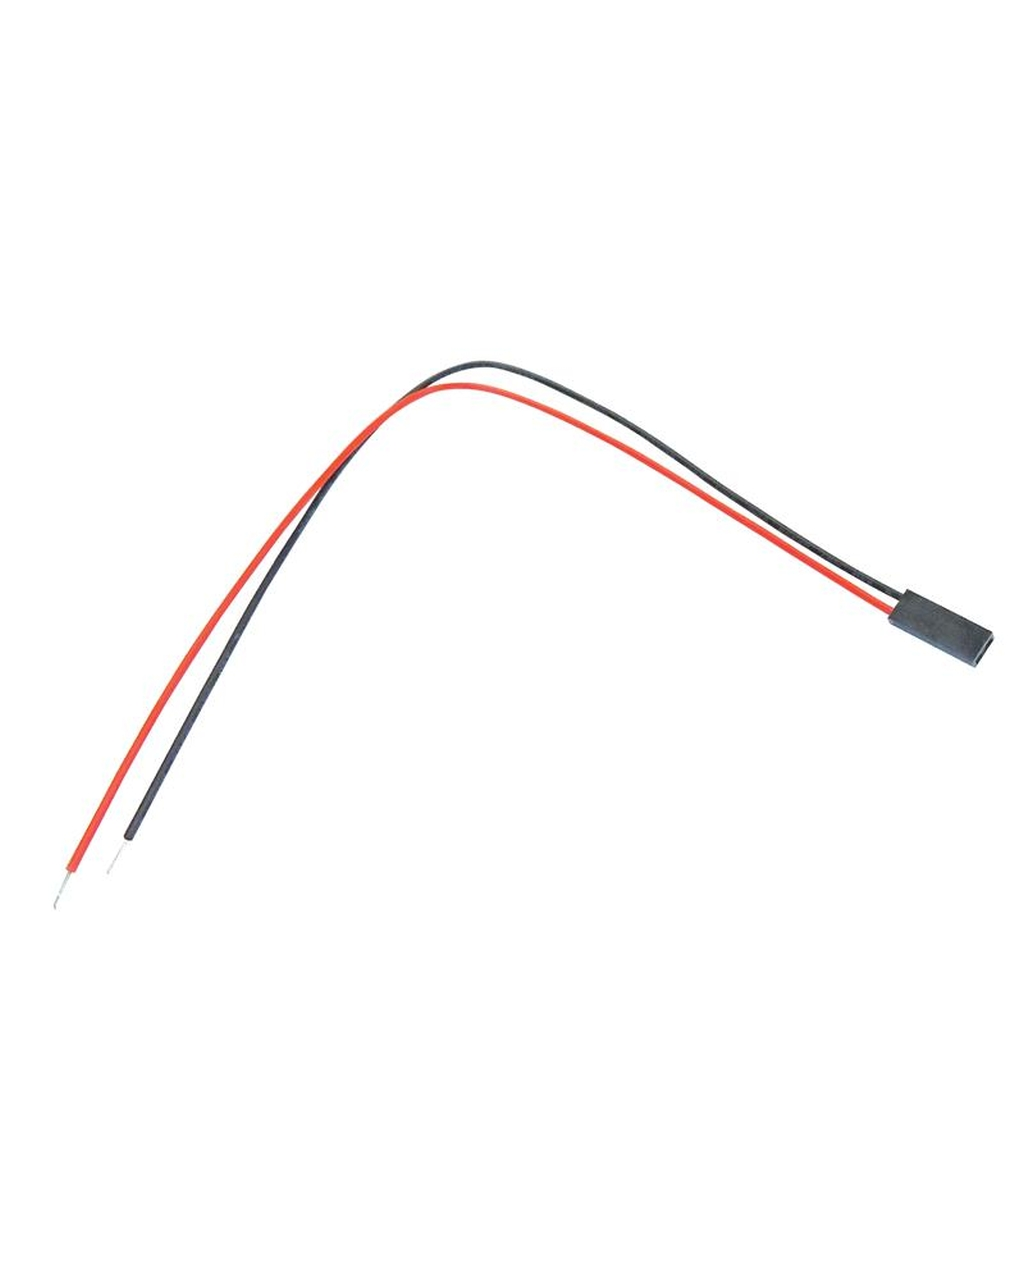 2.54mm LED Holder Solderless